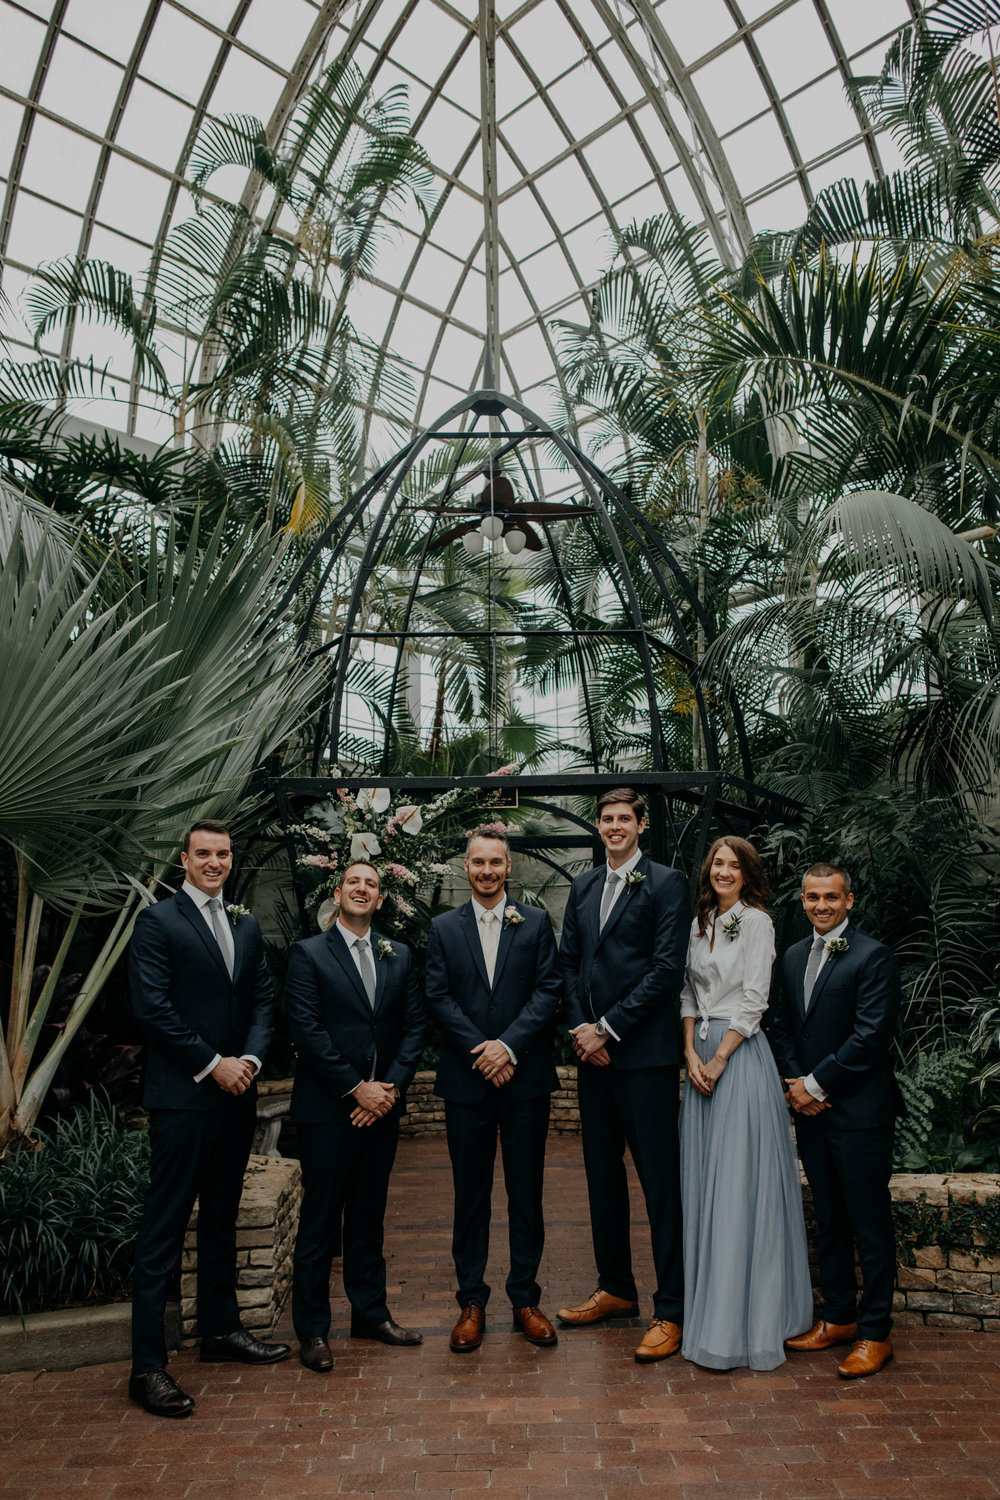 franklin park conservatory wedding columbus ohio wedding photographer grace e jones photography215.jpg